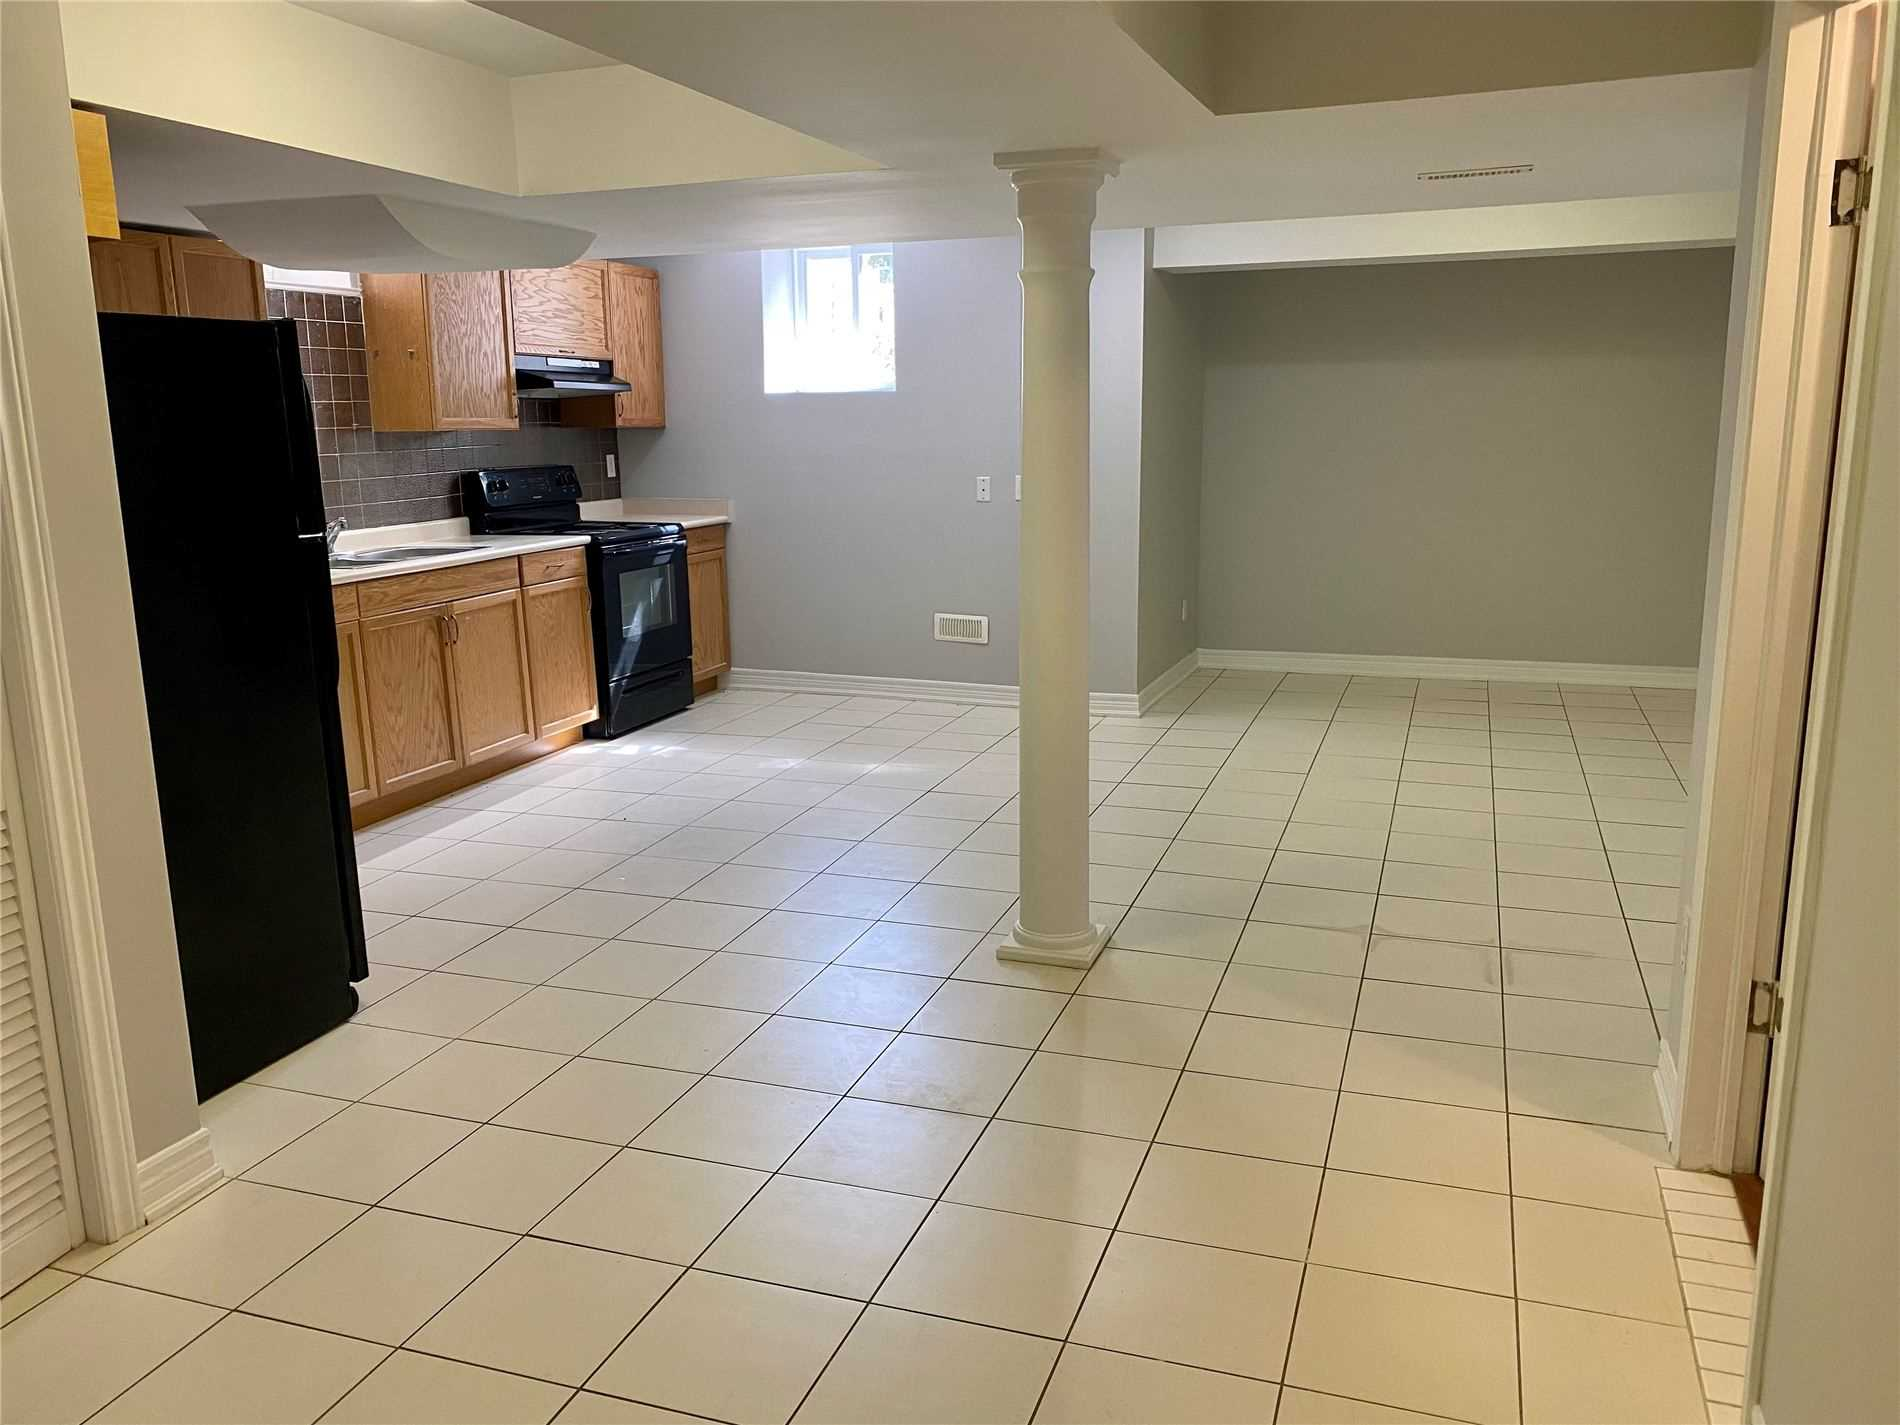 Detached house For Lease In Vaughan - 45 Noble Prince Pl, Vaughan, Ontario, Canada L4H1S5 , 2 Bedrooms Bedrooms, ,1 BathroomBathrooms,Detached,For Lease,Noble Prince